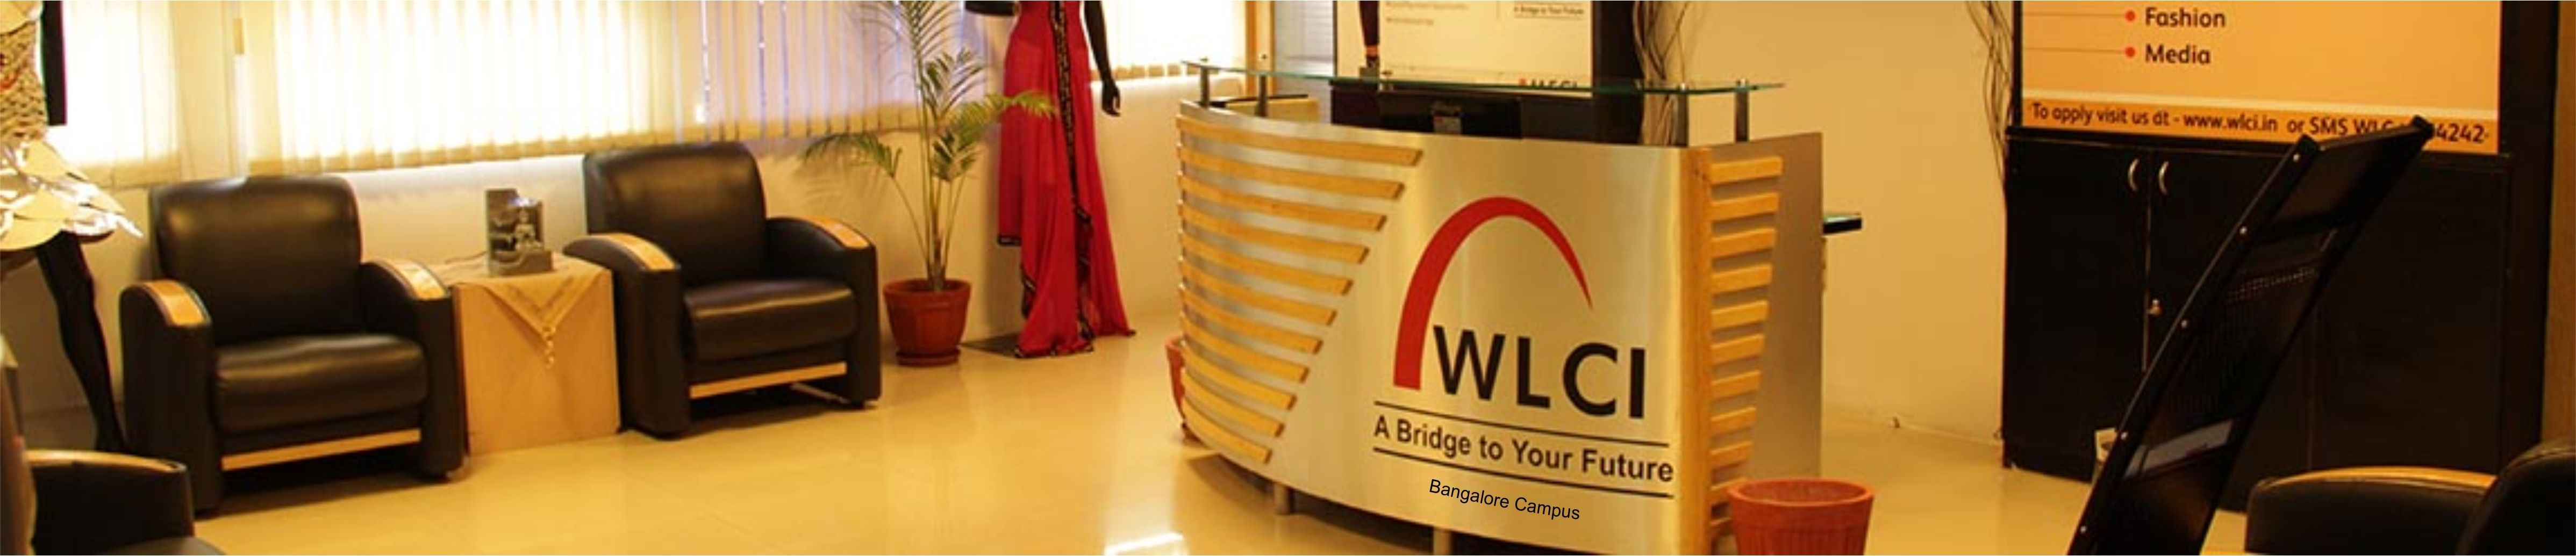 Wlci bangalore college offer fashion and graphics design wlci bangalore college offer fashion and graphics design certificate courses wlci school in bangalore 1betcityfo Images